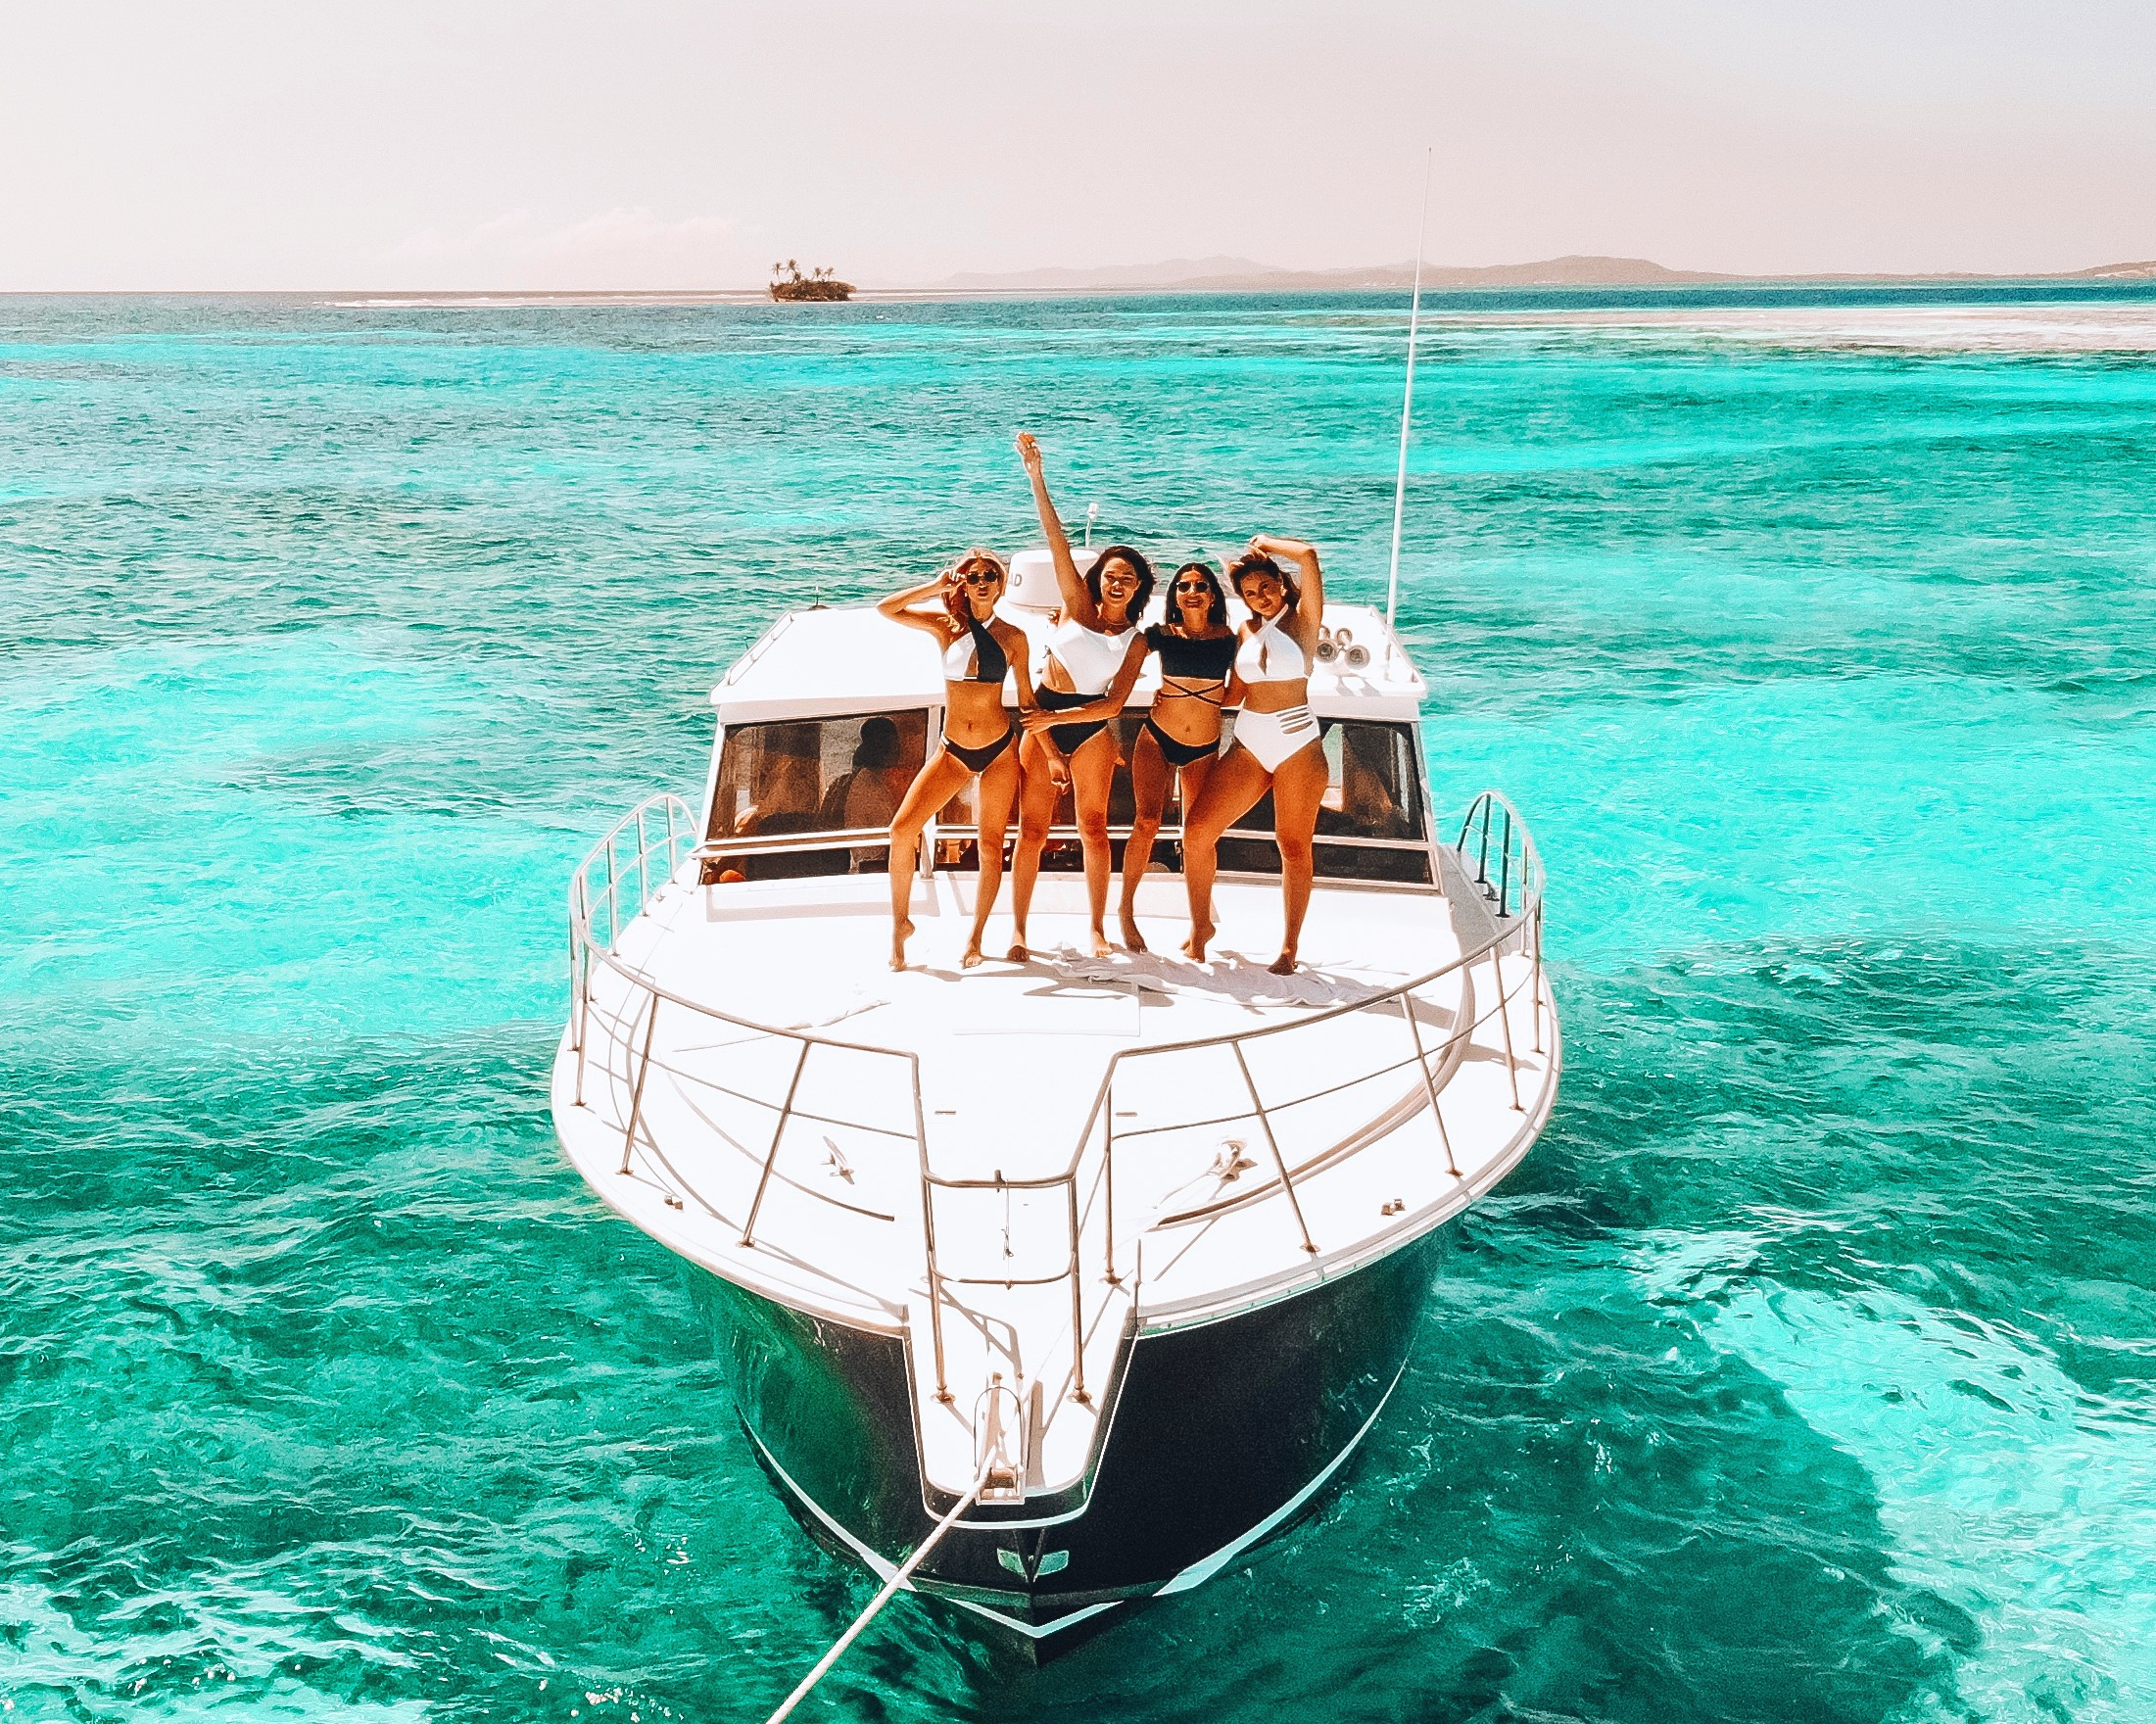 Or a yatch trip!! - tours@delamesa.com